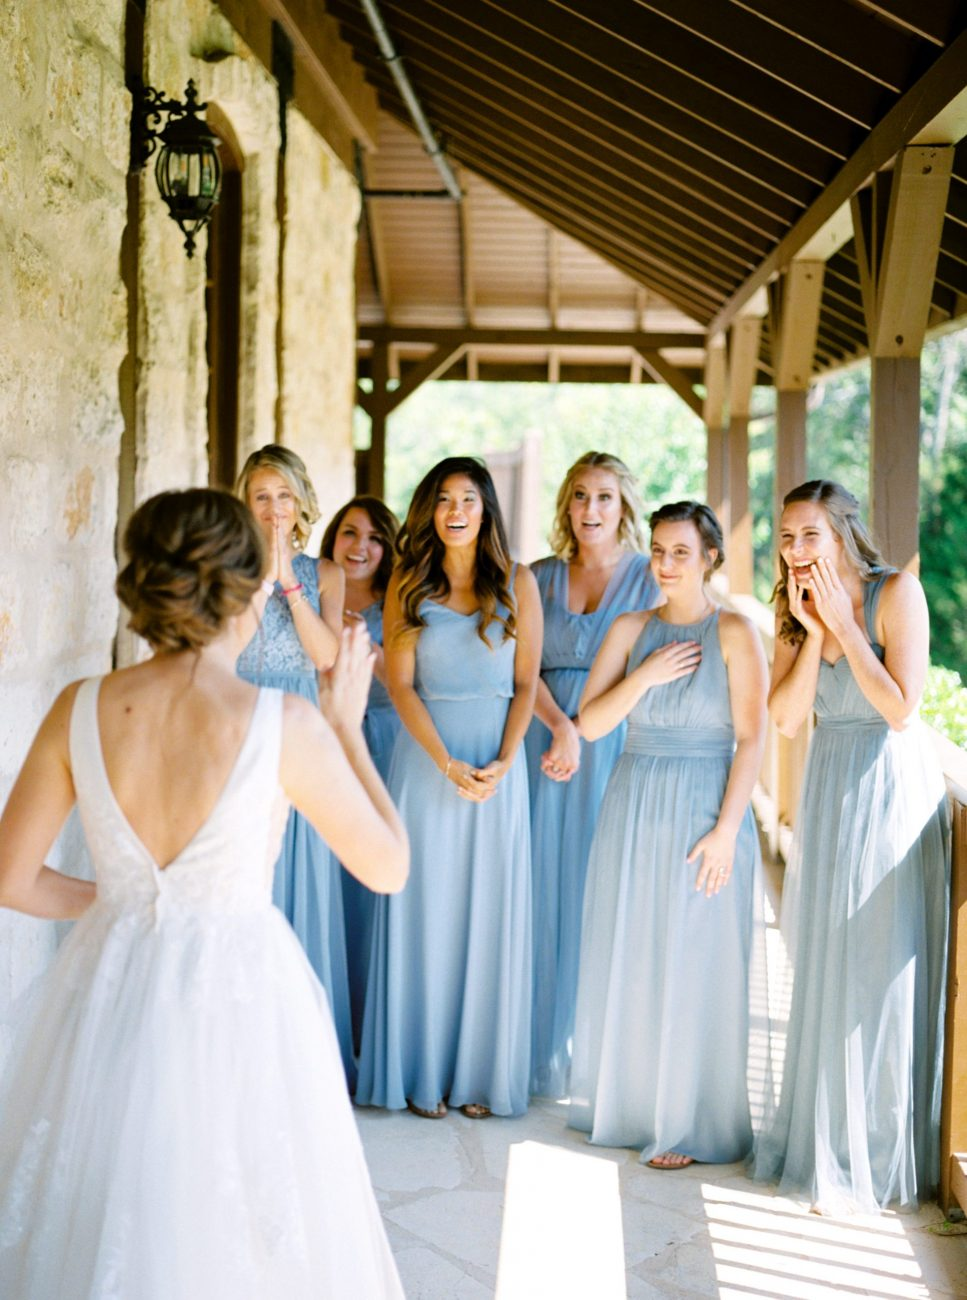 Bridesmaids in blue dresses seeing their bride for the first time at The Springs Wedding Venue.